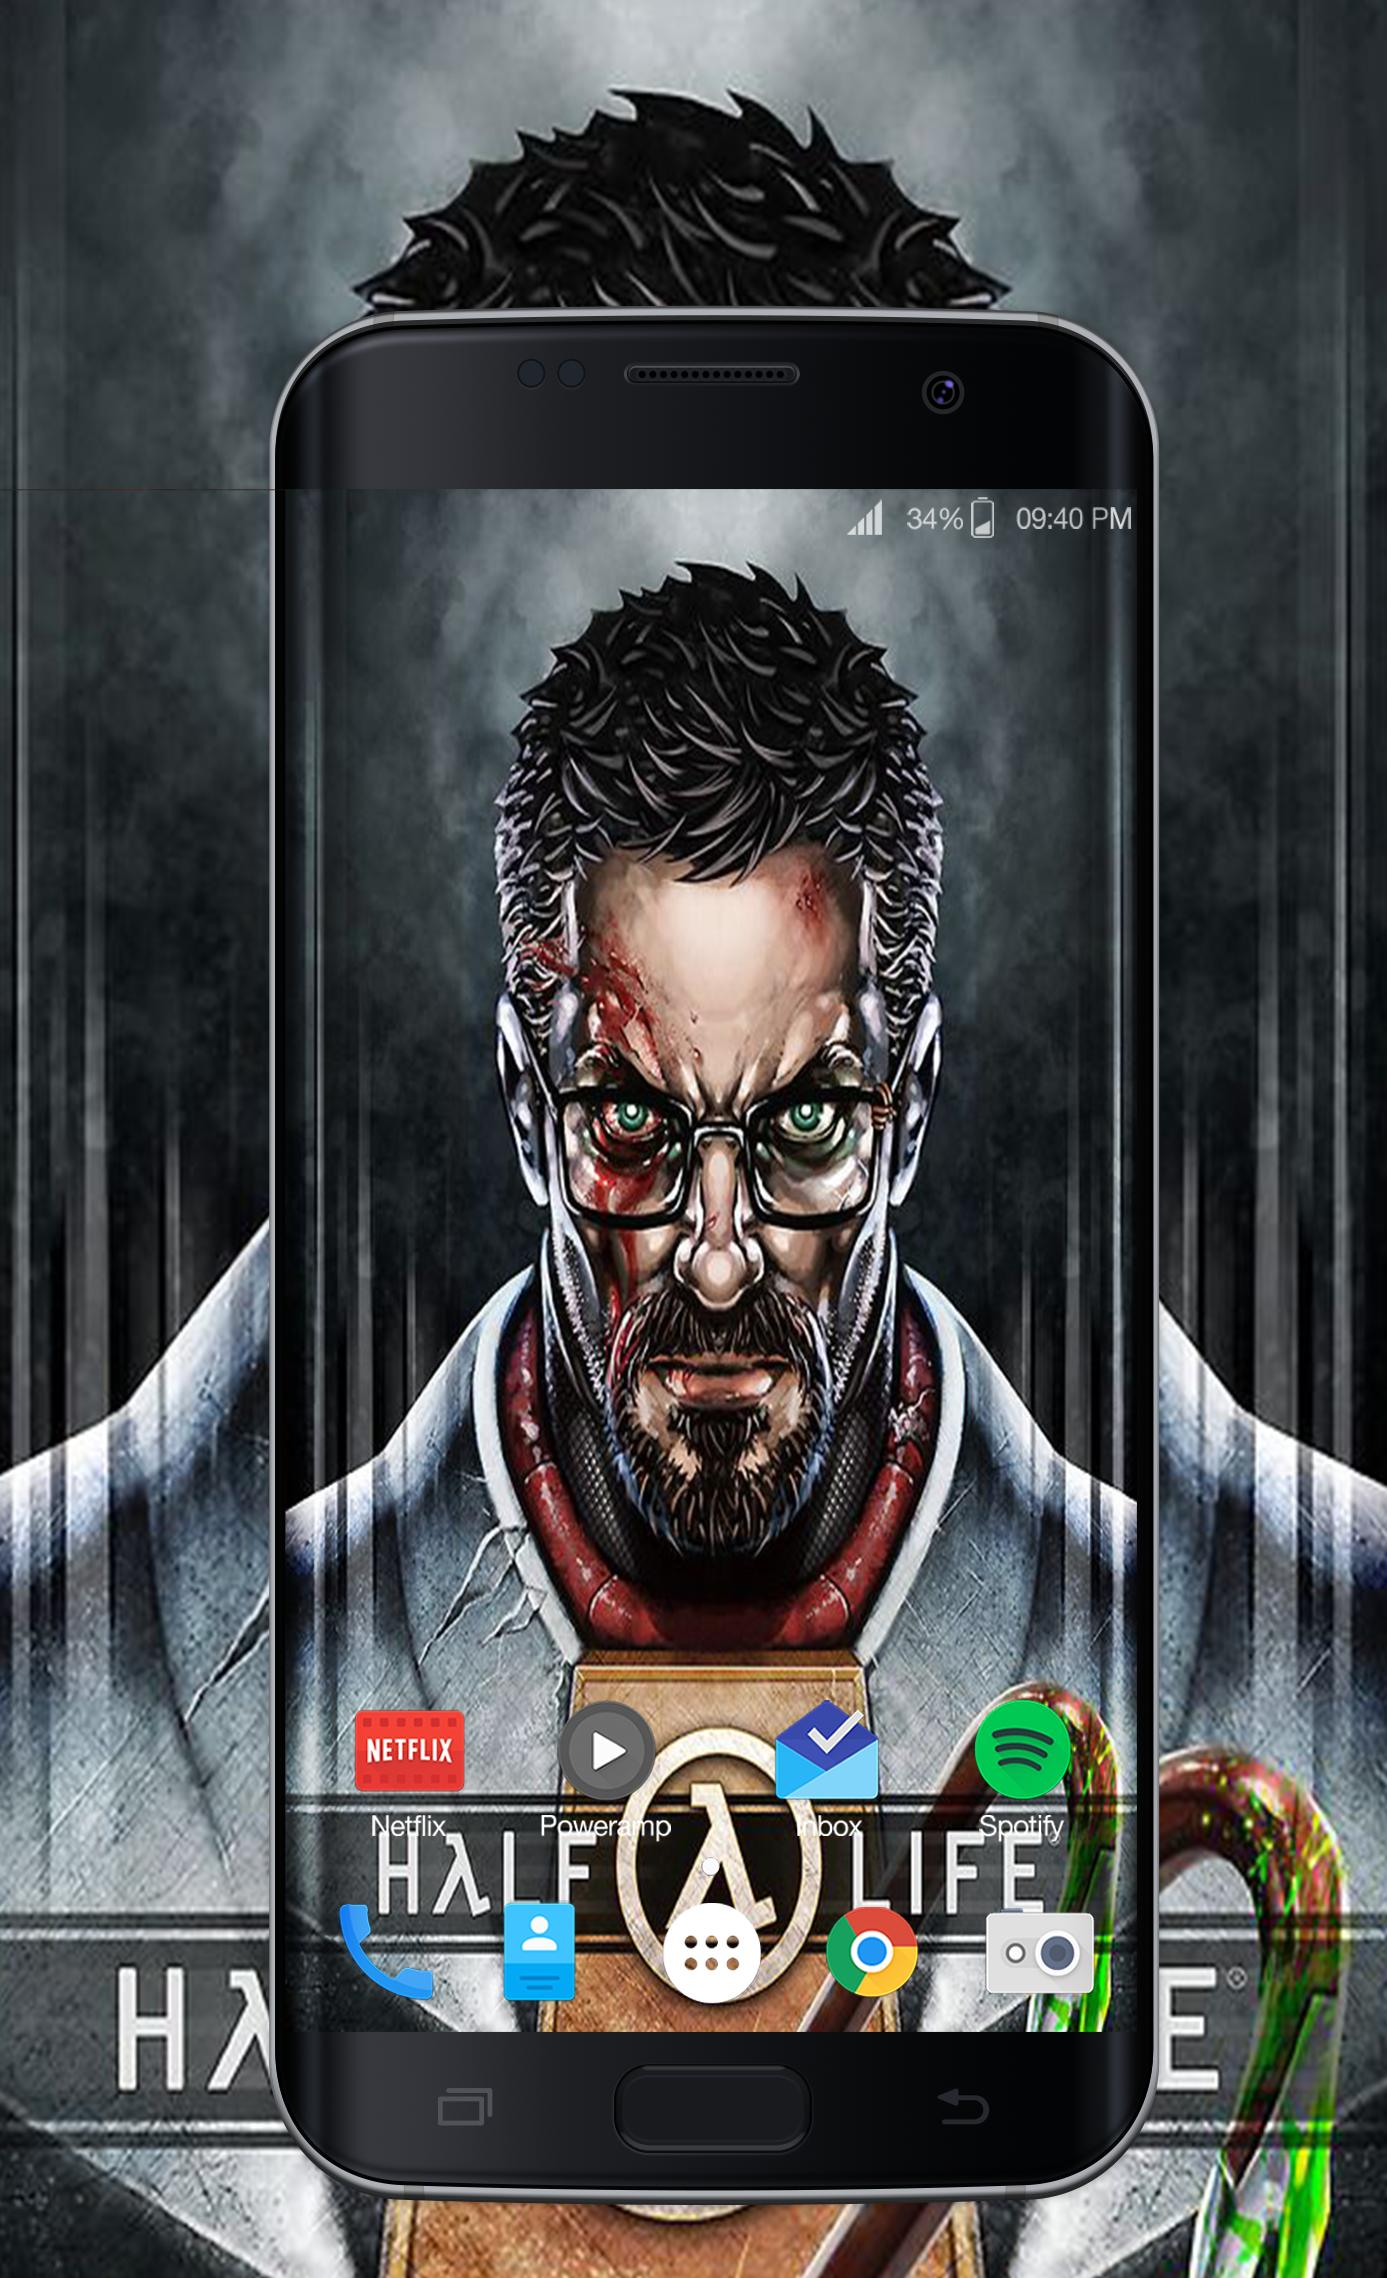 Half Life Wallpapers HD 4K for Android - APK Download